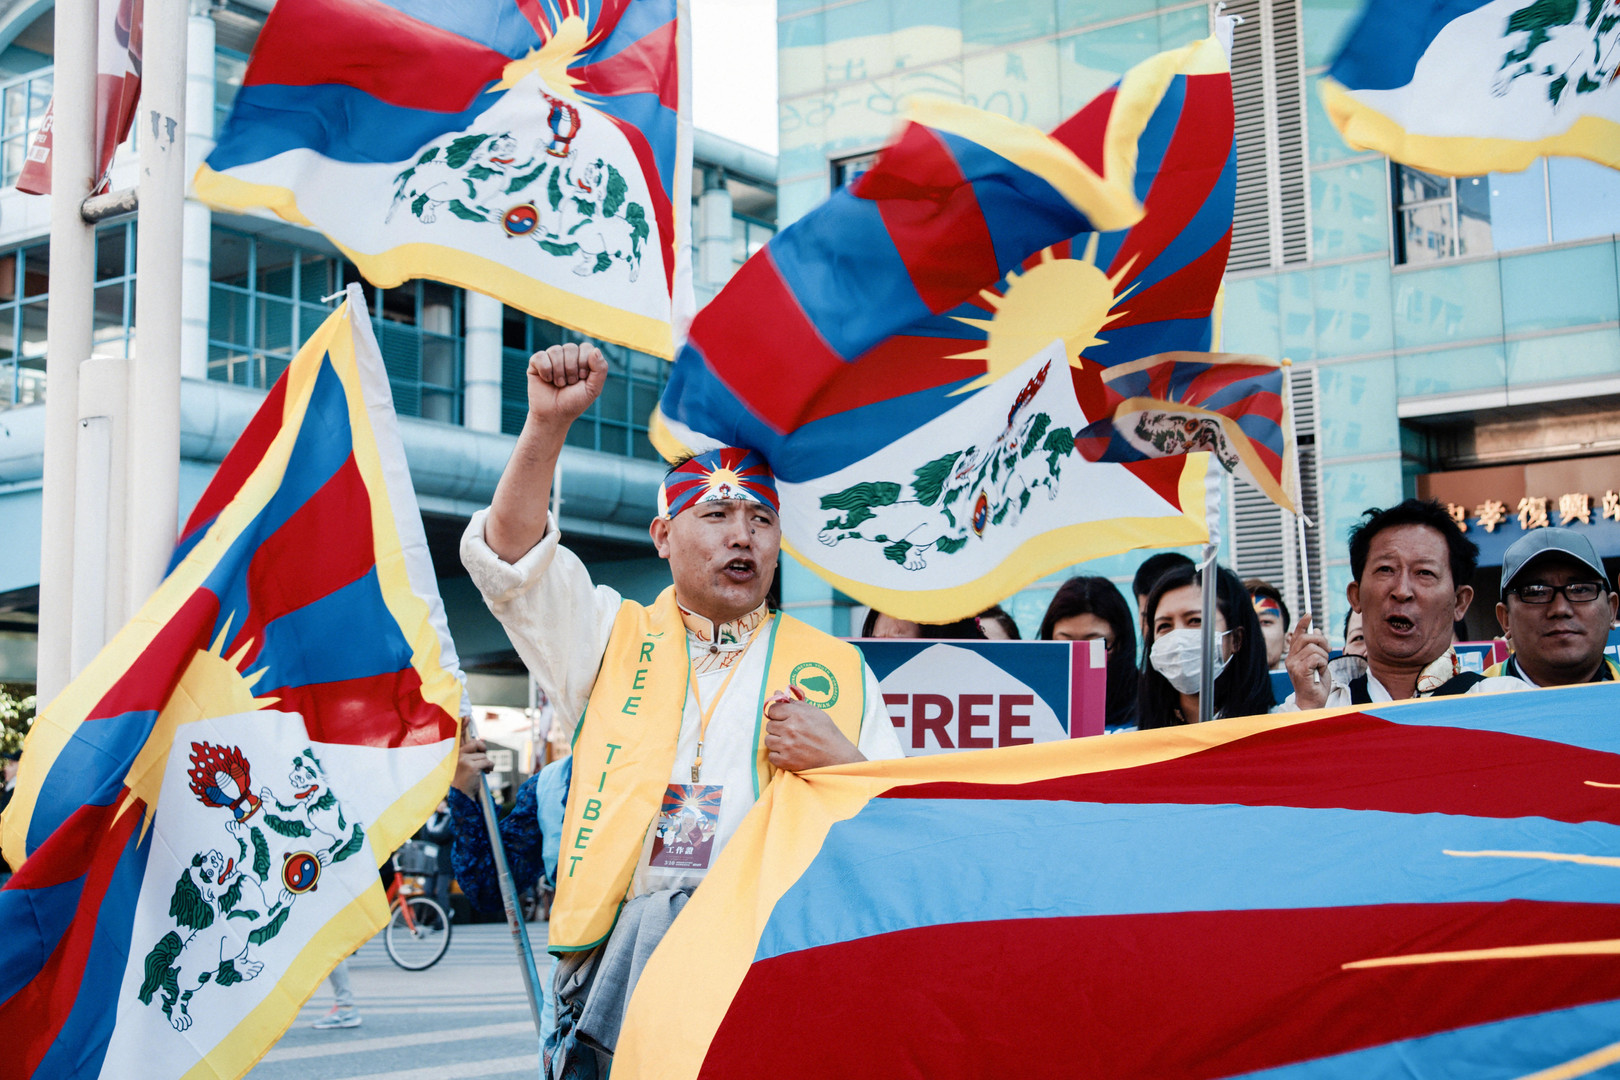 10 MARCH TIBET UPRISING CELEBRATION DAY